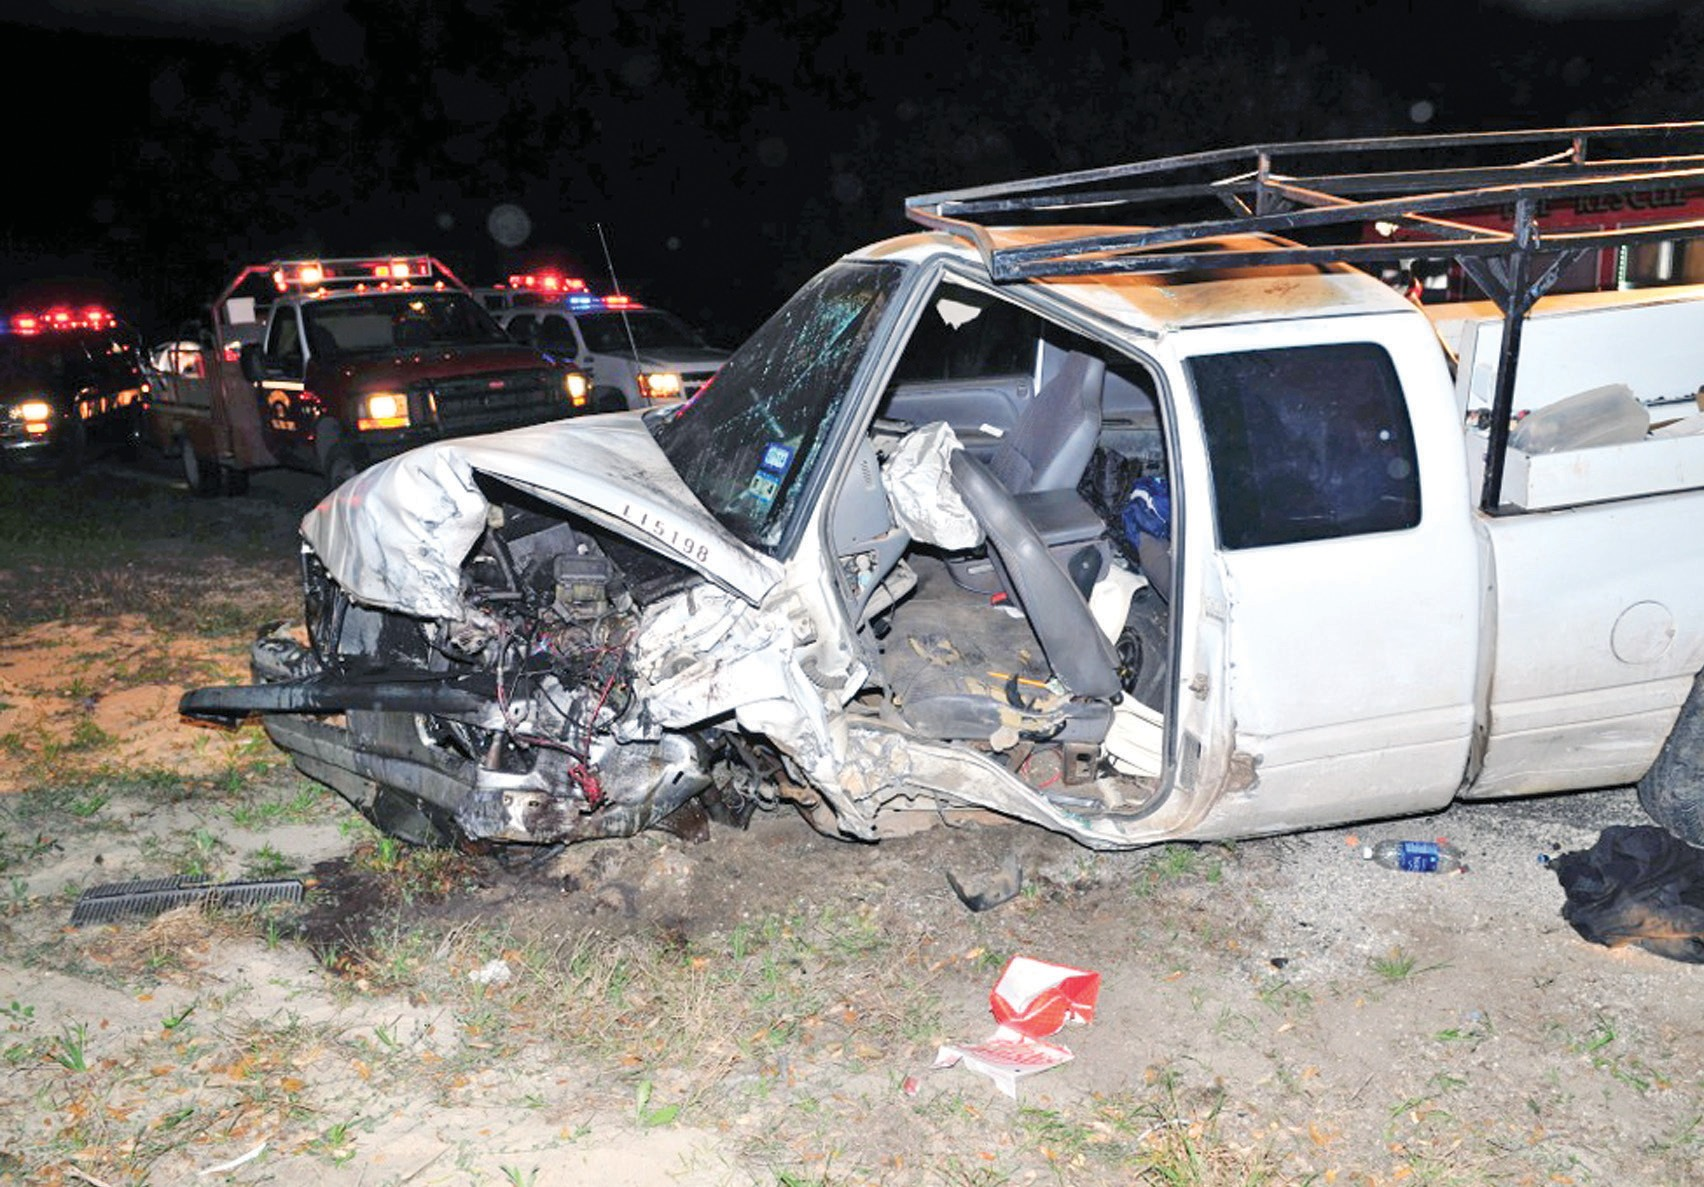 A truck and a car collided on Highway 281 in Leming, north of FM 536 Friday, March 21 around 2 a.m. The driver of the car, Reyshanda Davis of San Antonio, 25, was killed in the crash. The DPS crash synopsis says that Davis was driving in the southbound lane of 281 and Nino Sanchez of San Antonio, 39, was driving the truck north in the southbound lane. According to DPS, Sanchez struck the guardrail and lost control crashing into Davis' car. Riding with Davis were Cheyanne King, 22 and LaJoy King, 20.